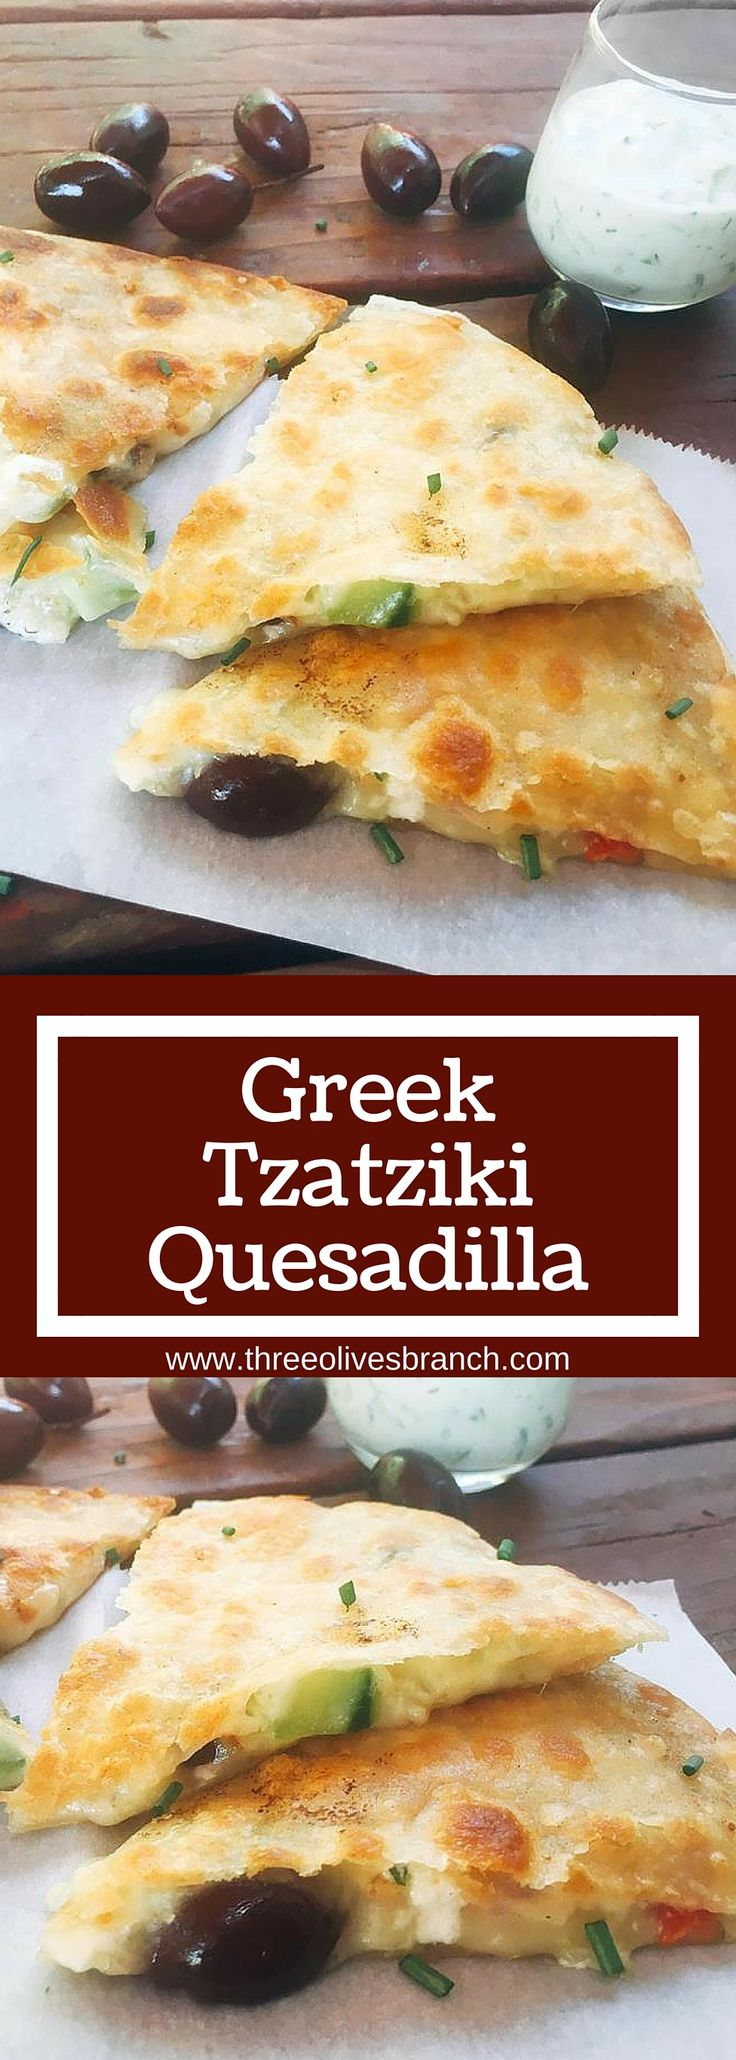 Ready in just 10 minutes! Greek Tzatziki Quesadillas are a great way to sneak some veggies into a fun snack or meal! All the flavors of Greek salad in quesadilla form with some tzatziki sauce inside for flavor, plus sauce for dipping | www.threeolivesbranch.com